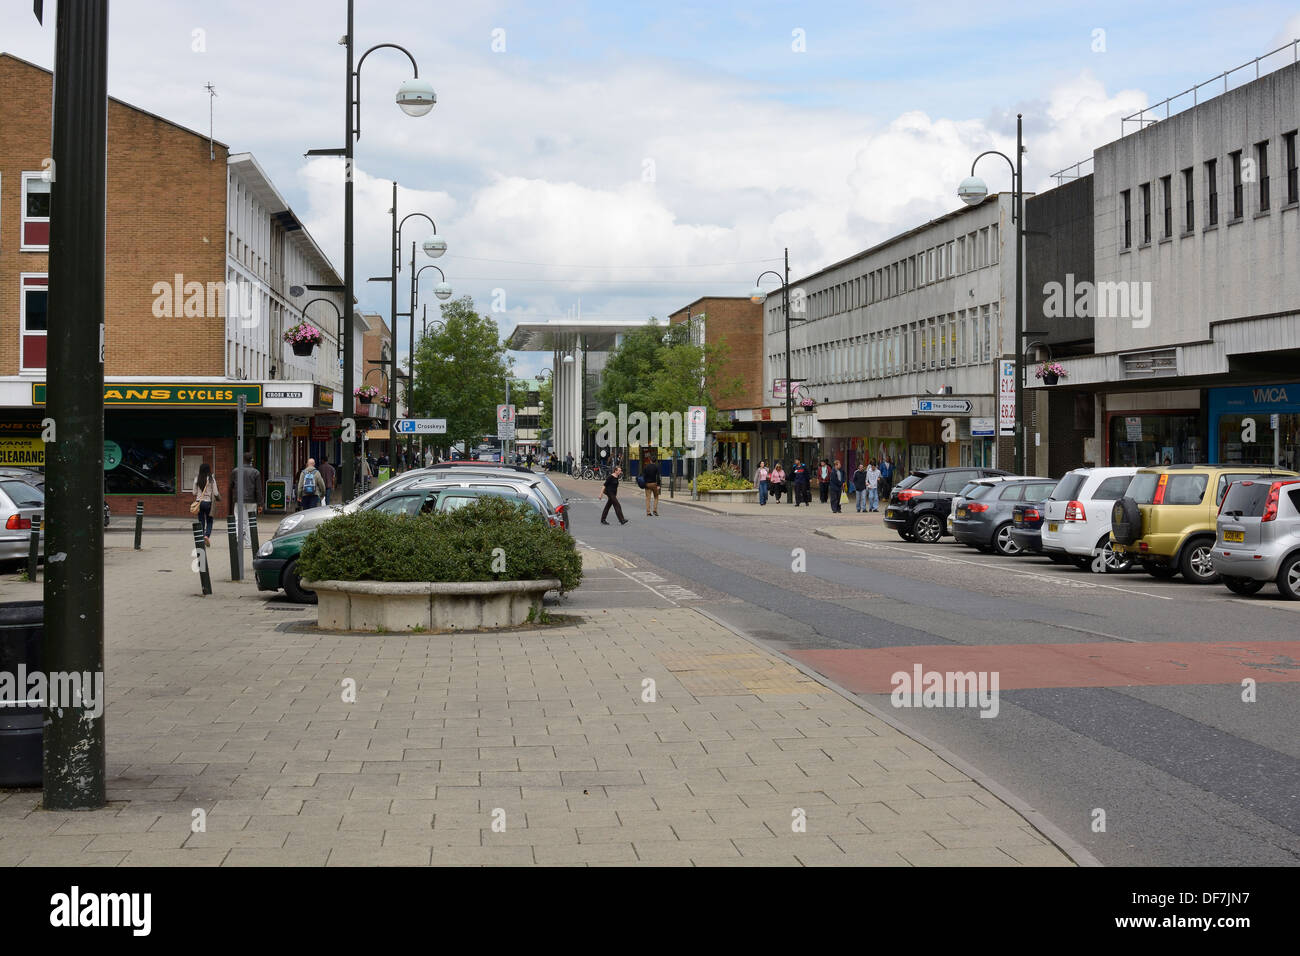 Modern shopping mall in Crawley Town Centre. West Sussex. England. With people and parked cars. - Stock Image